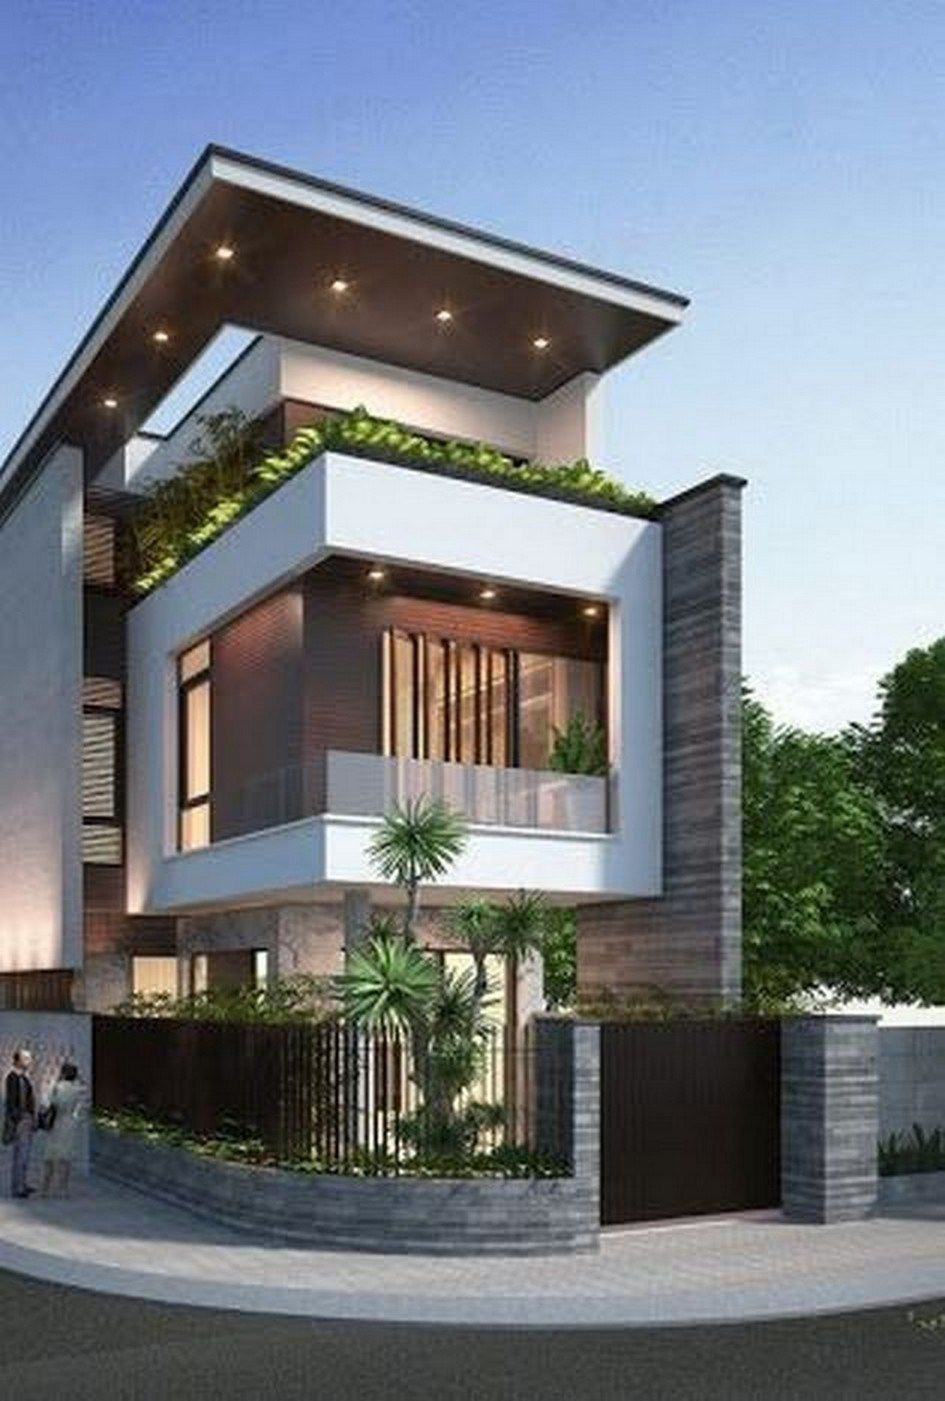 Unique Modern House Plans Awesome ✓ 43 the Most Unique Modern Home Design In the World 2019